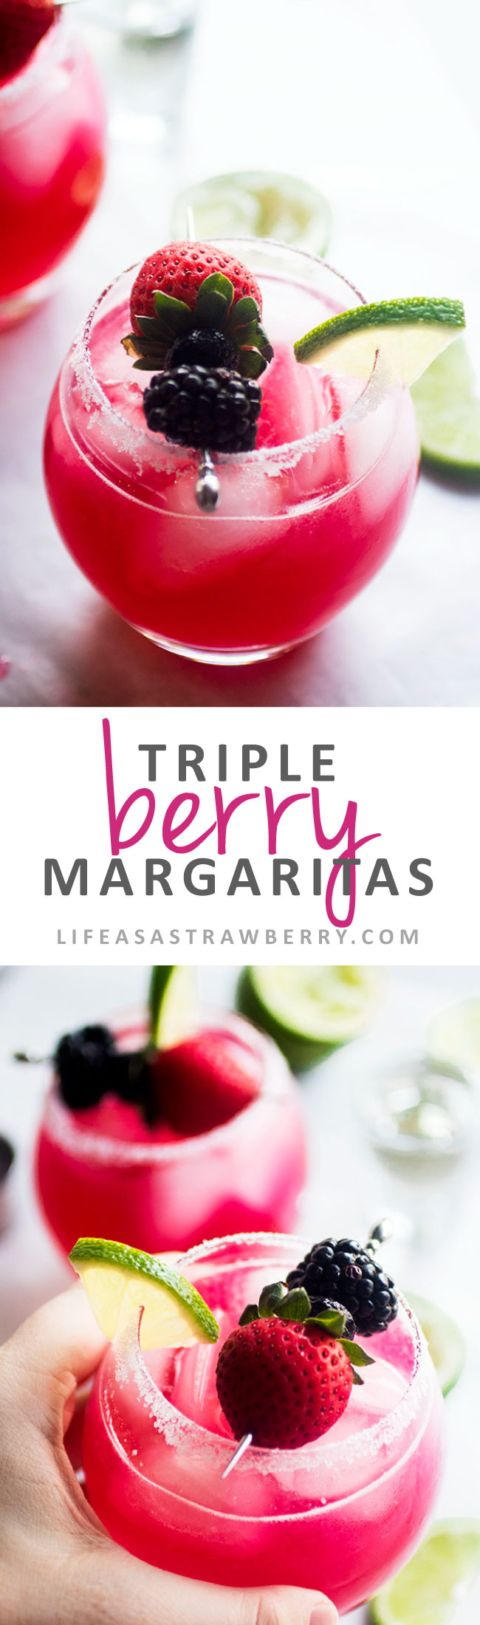 Triple Berry Margaritas - This easy margarita recipe uses fresh blackberries, strawberries, and blueberries for a sweet, colorful twist on a refreshing tequila cocktail. No margarita mix required! Vegetarian, Vegan.